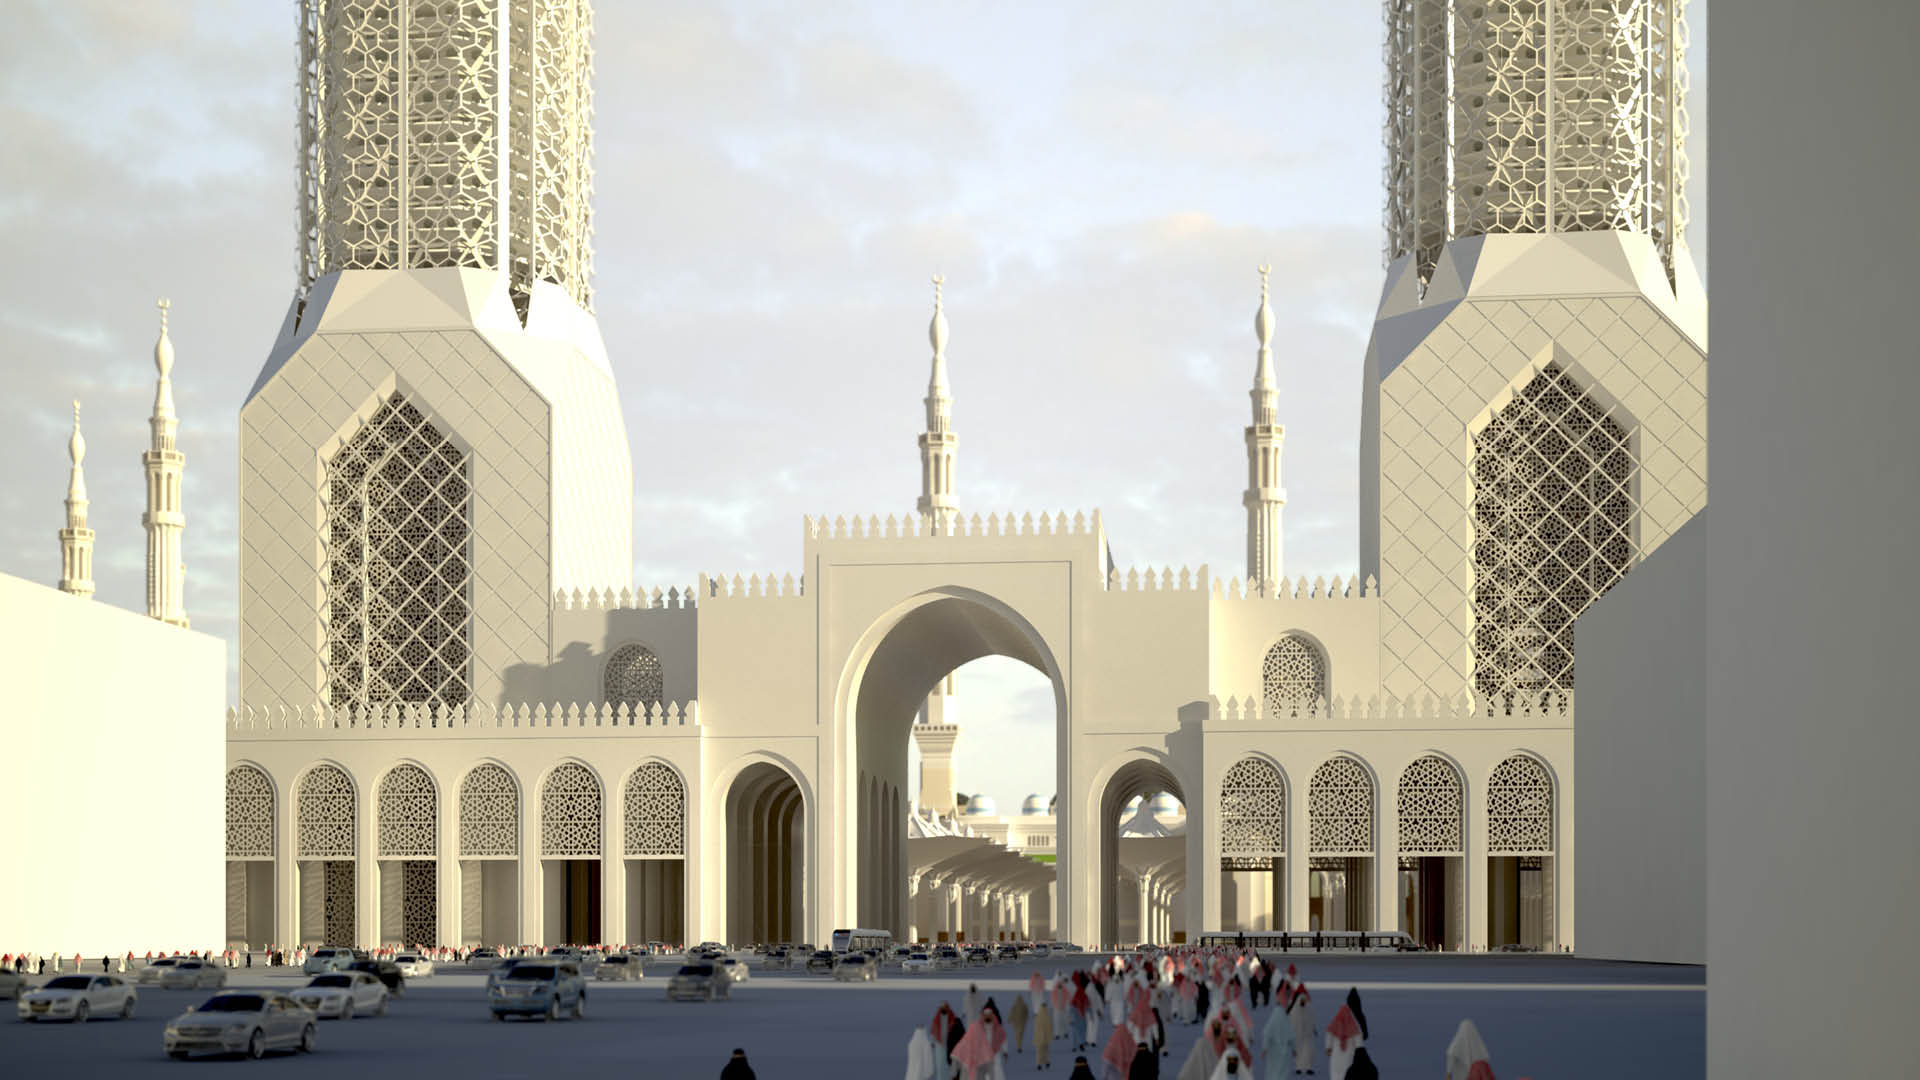 A contemporary interpretation of local tradition - The large gateway building closes the mosque complex off from the city and cites a traditional element of Islamic architecture in the form of mashrabiya-style cladding.